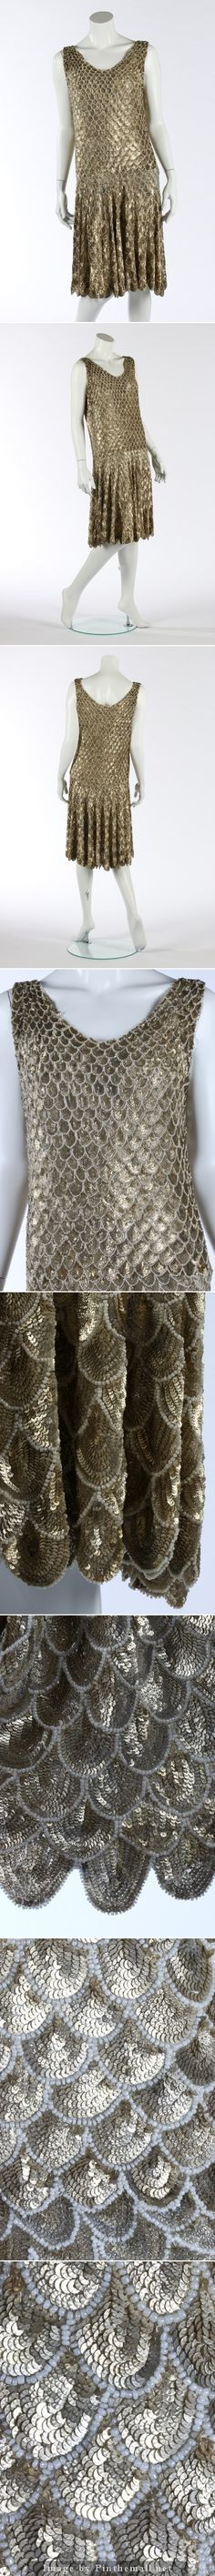 A fine couture gold sequined 'flapper' dress, circa 1927. un-labelled, the tulle ground applied with embossed golden sequined scales edged in pearl beads, which increase in size from neck to hem. KTA